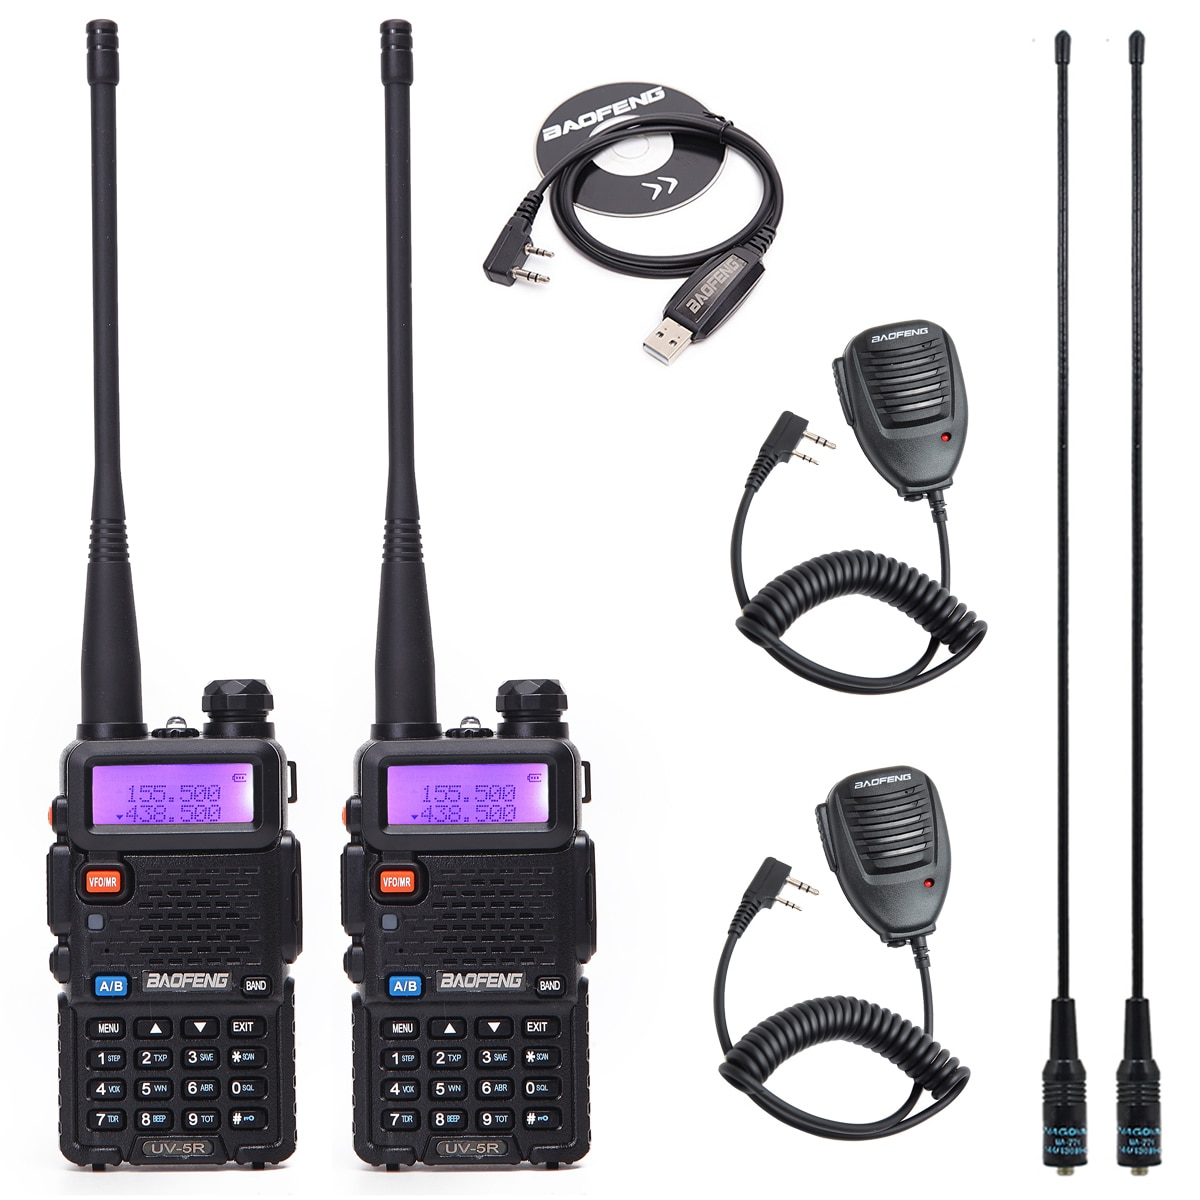 1/2PCS BaoFeng UV-5R Dual Band VHF/UHF136-174Mhz&400-520Mhz Walkie Talkie Two way radio Baofeng Handheld UV5R Ham Portable Radio